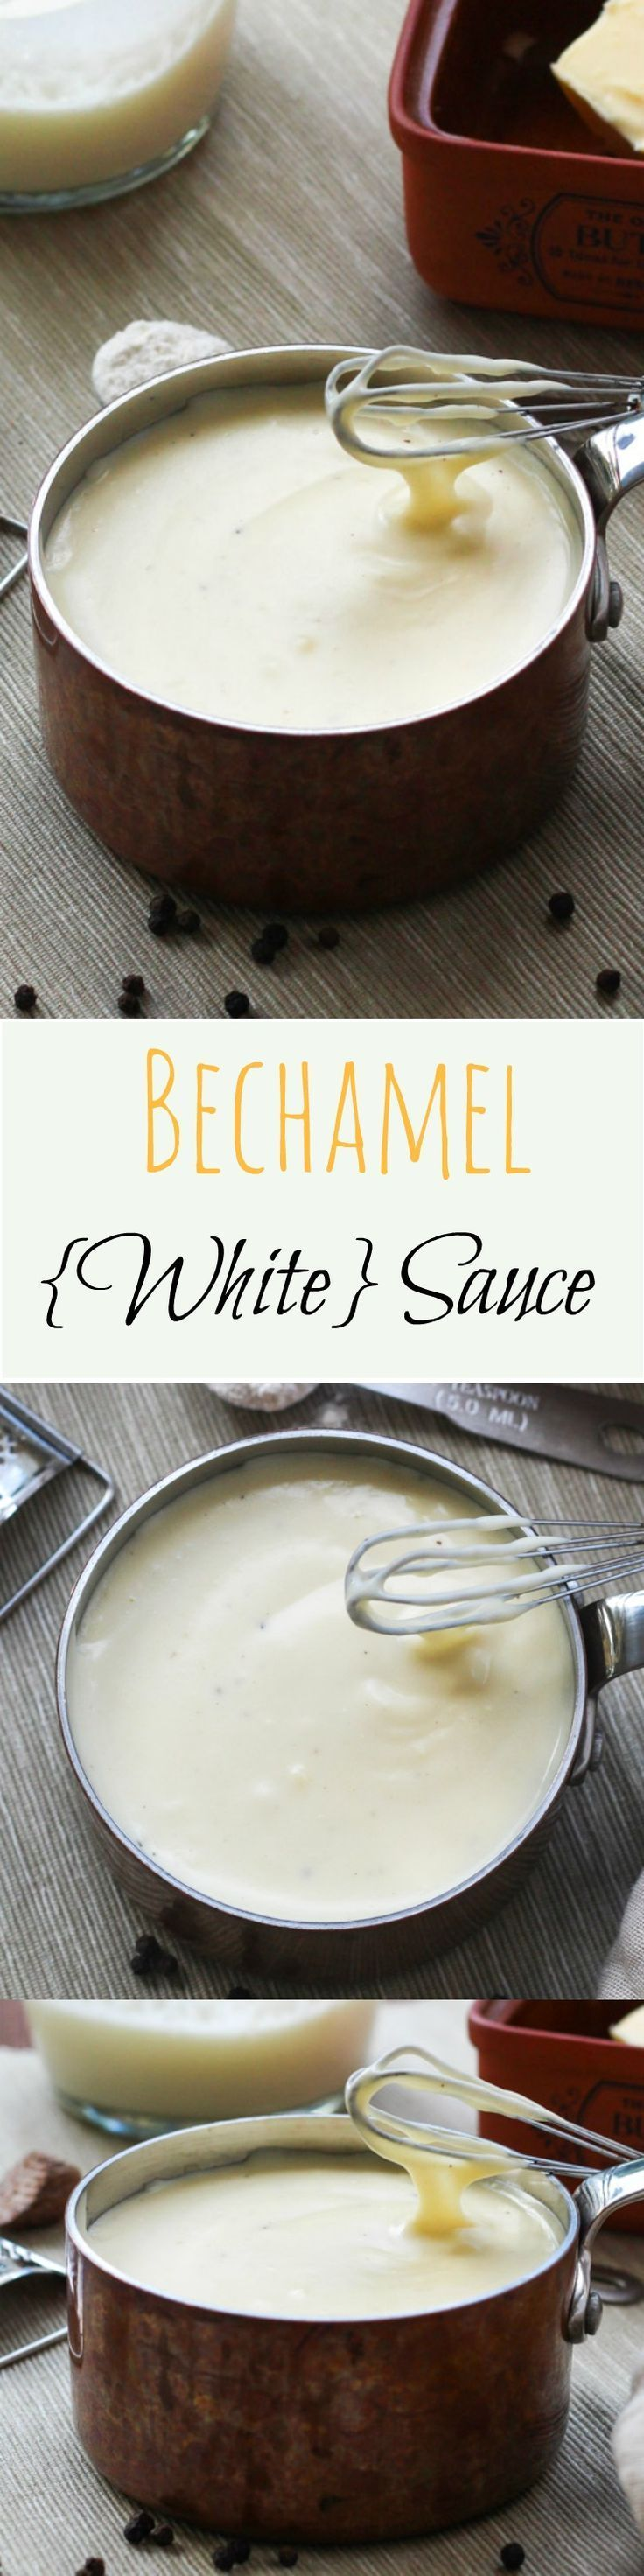 This Bechamel Sauce ( also known as White Sauce) is simple to make, incredibly versatile and freezes brilliantly.